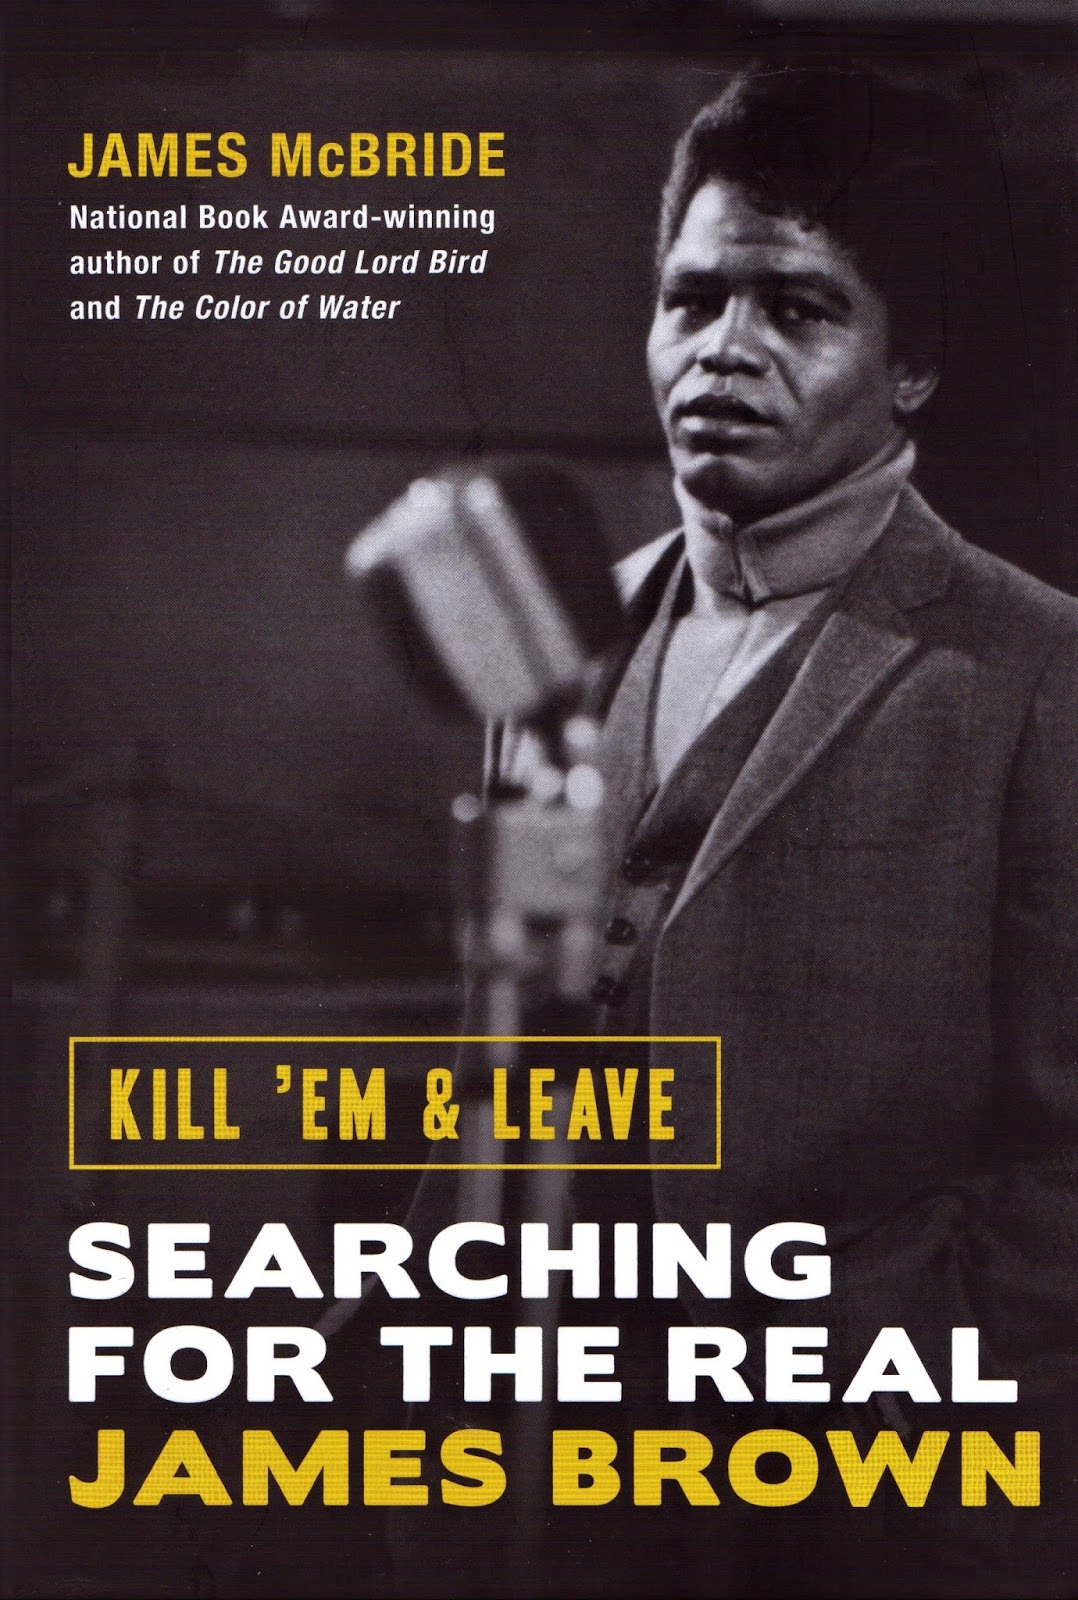 Erik's Choice: James McBride's 'Kill 'Em & Leave: Searching for the Real  James Brown' (2016)